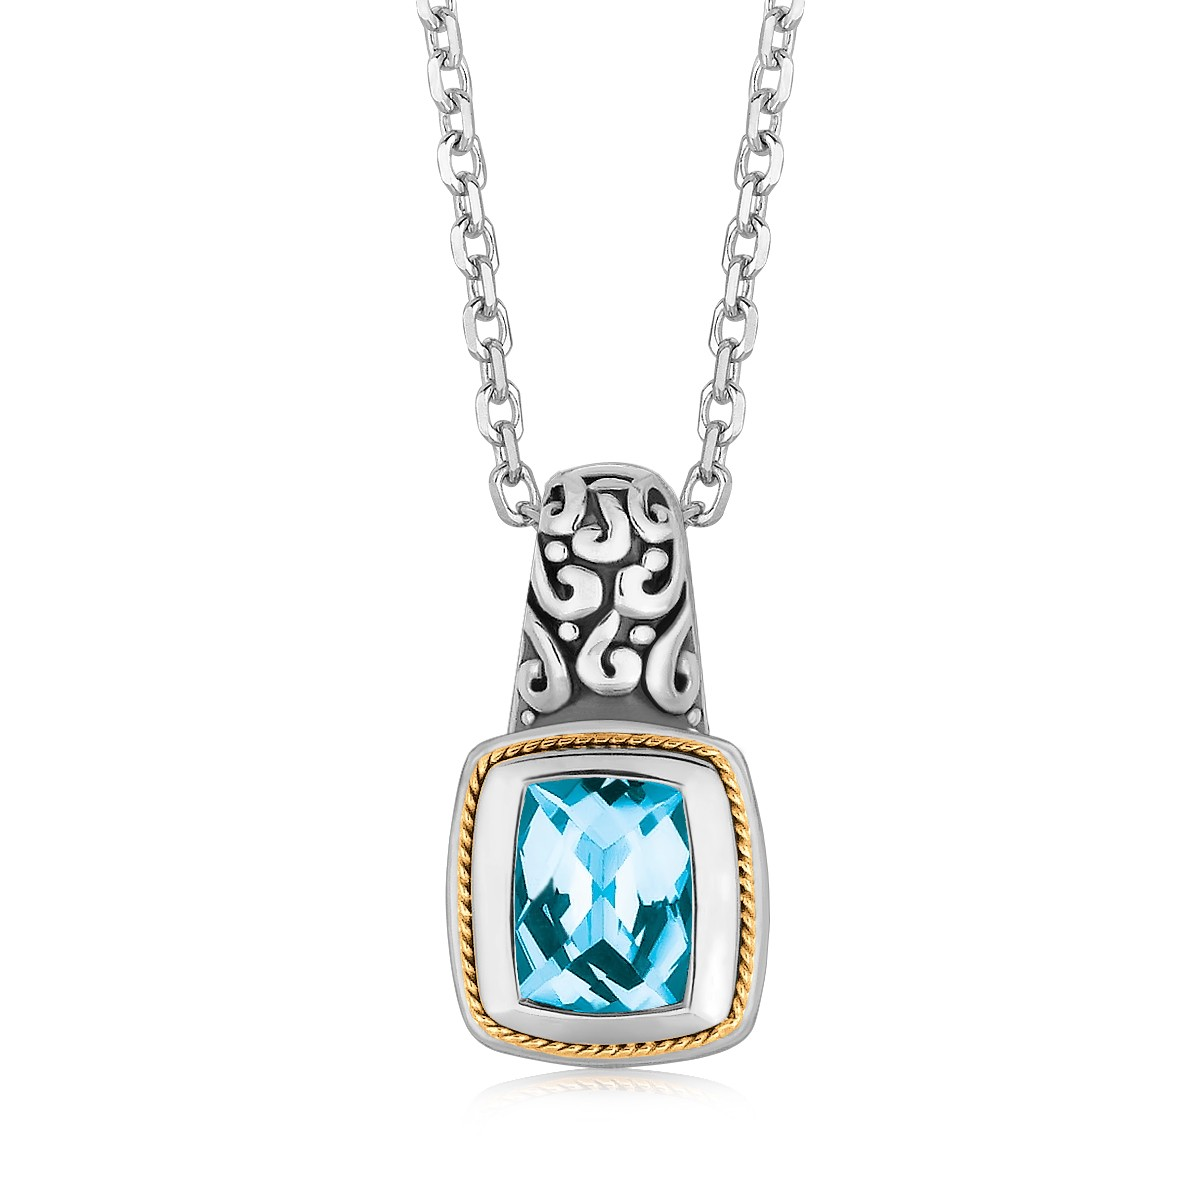 """18K Yellow Gold and Sterling Silver Necklace with Milgrained Blue Topaz Pendant 18"""" by Mia Diamonds"""